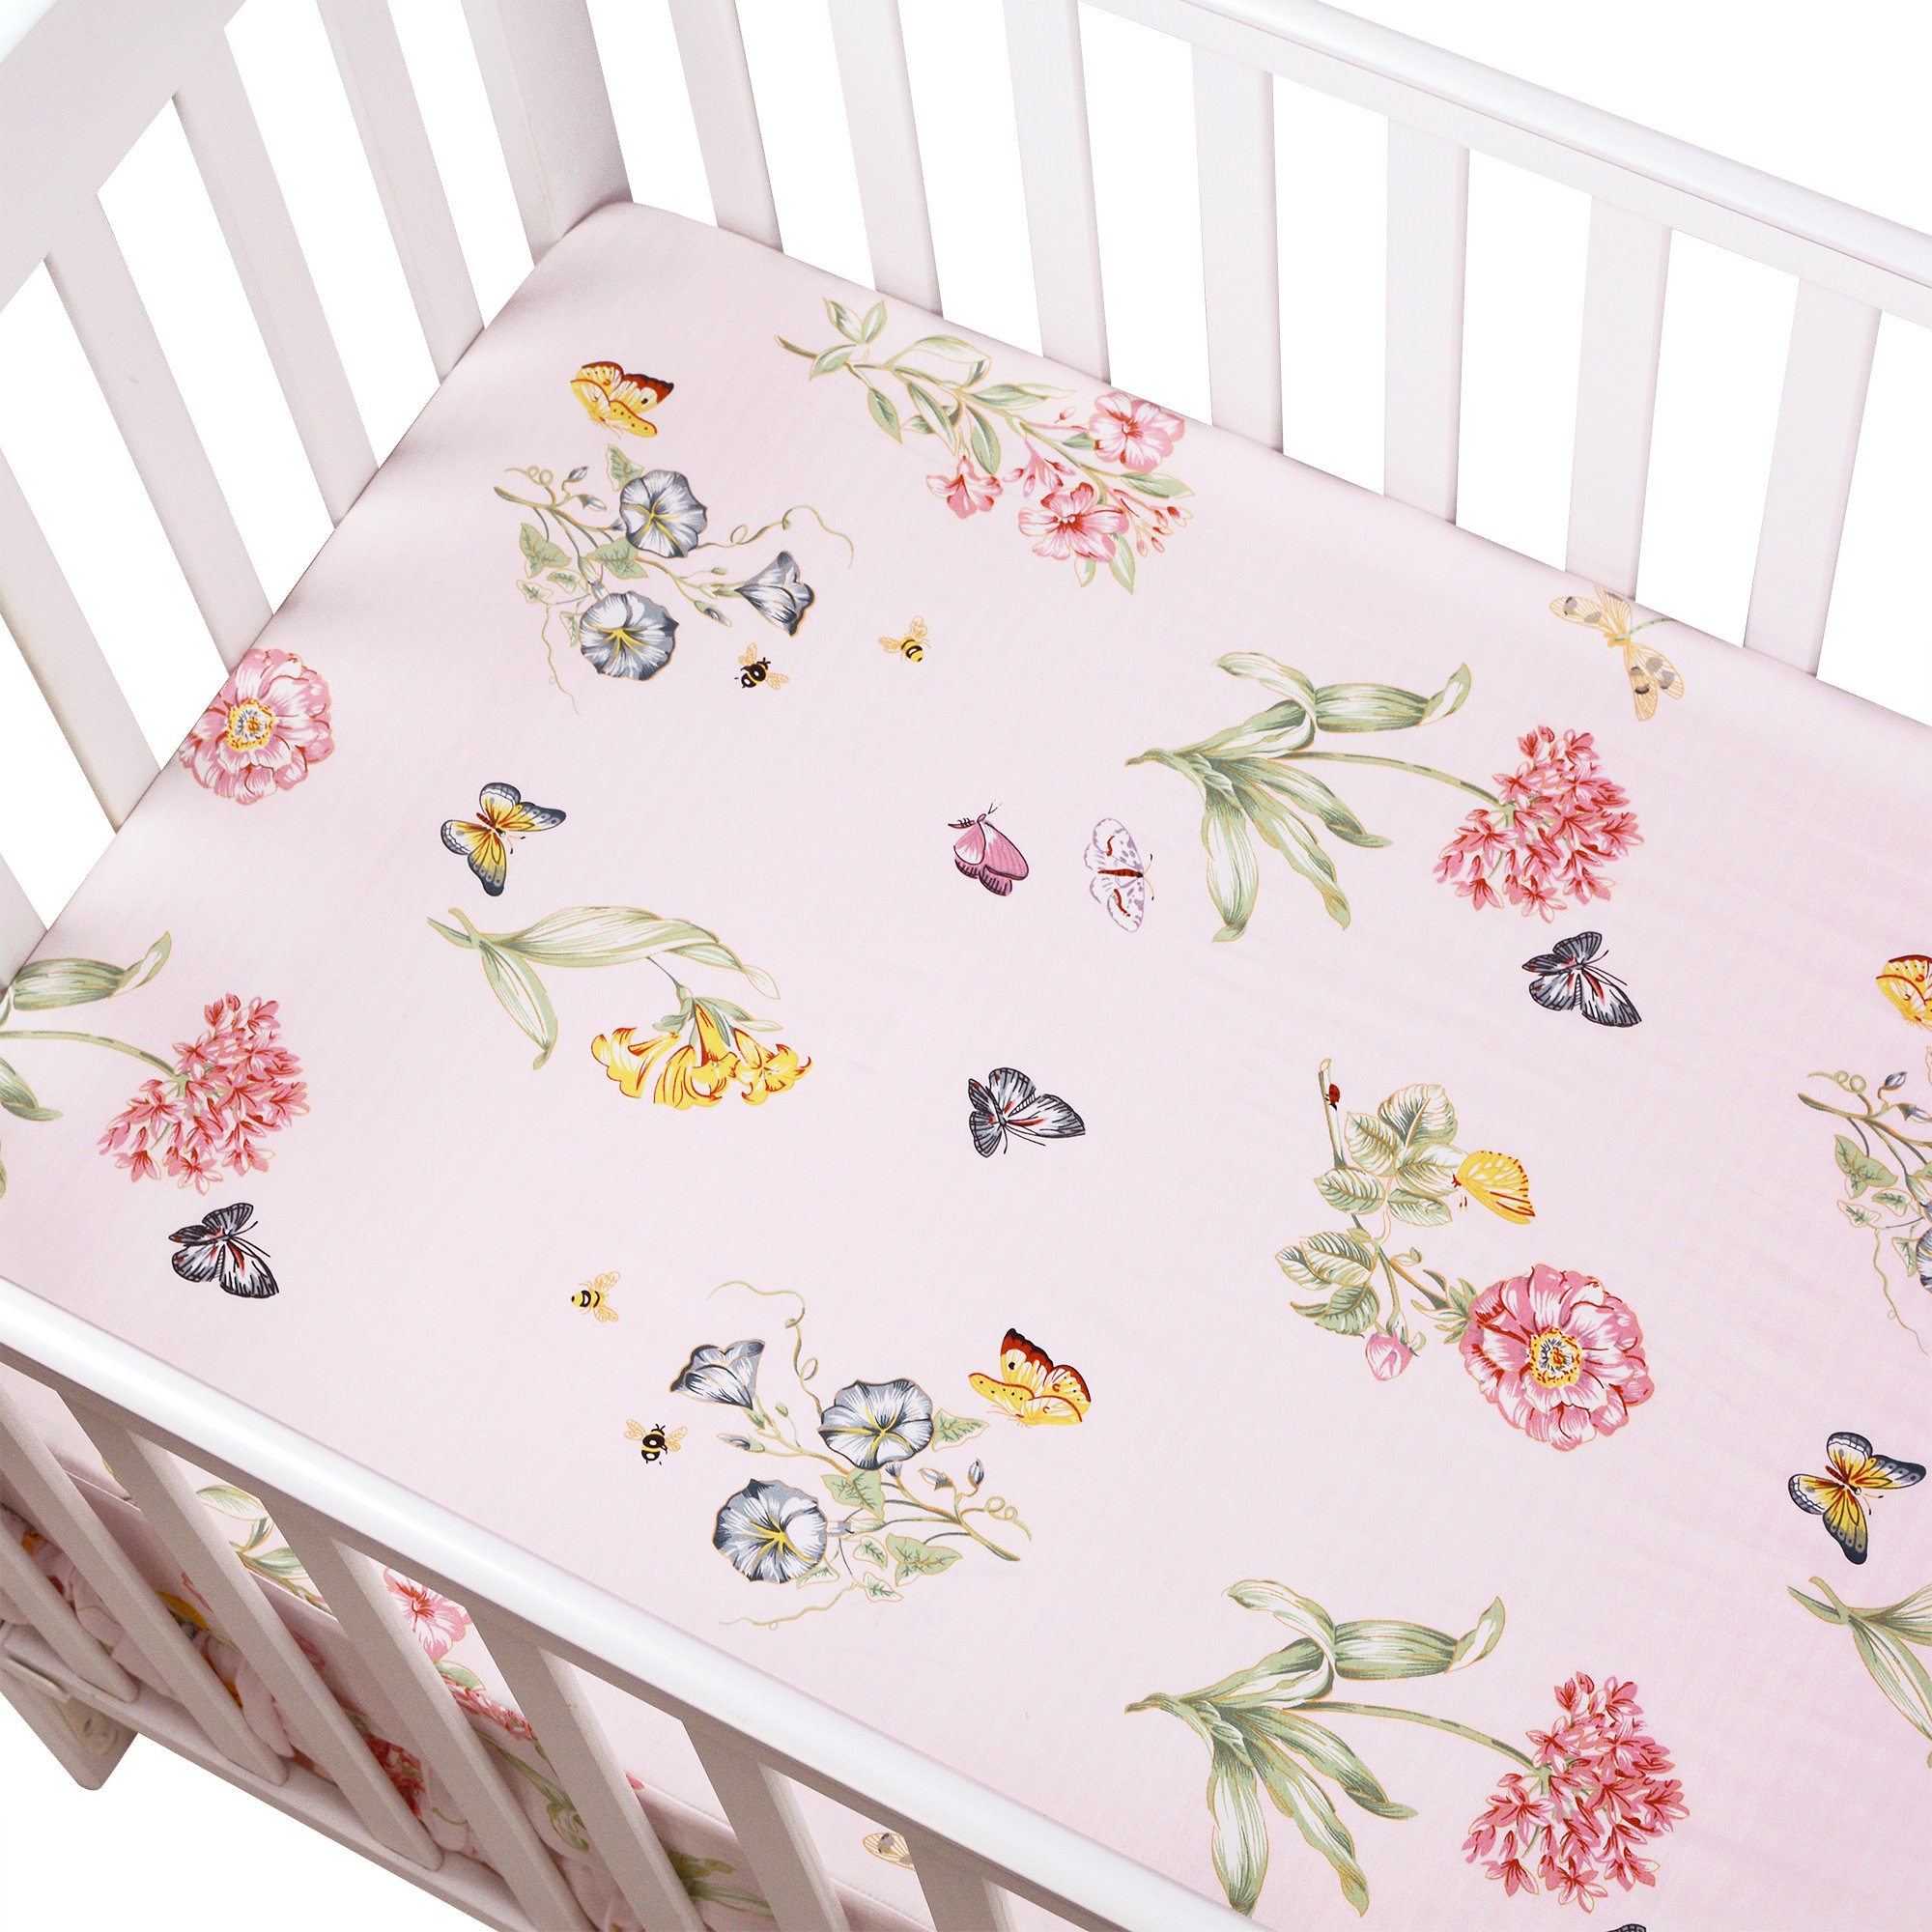 Baby Bedding Ups Free New 3 Pcs Beatles Baby Cot Set Bedding Crib For Baby Sheets Comforter Quilt Sheet Bumper The Latest Fashion